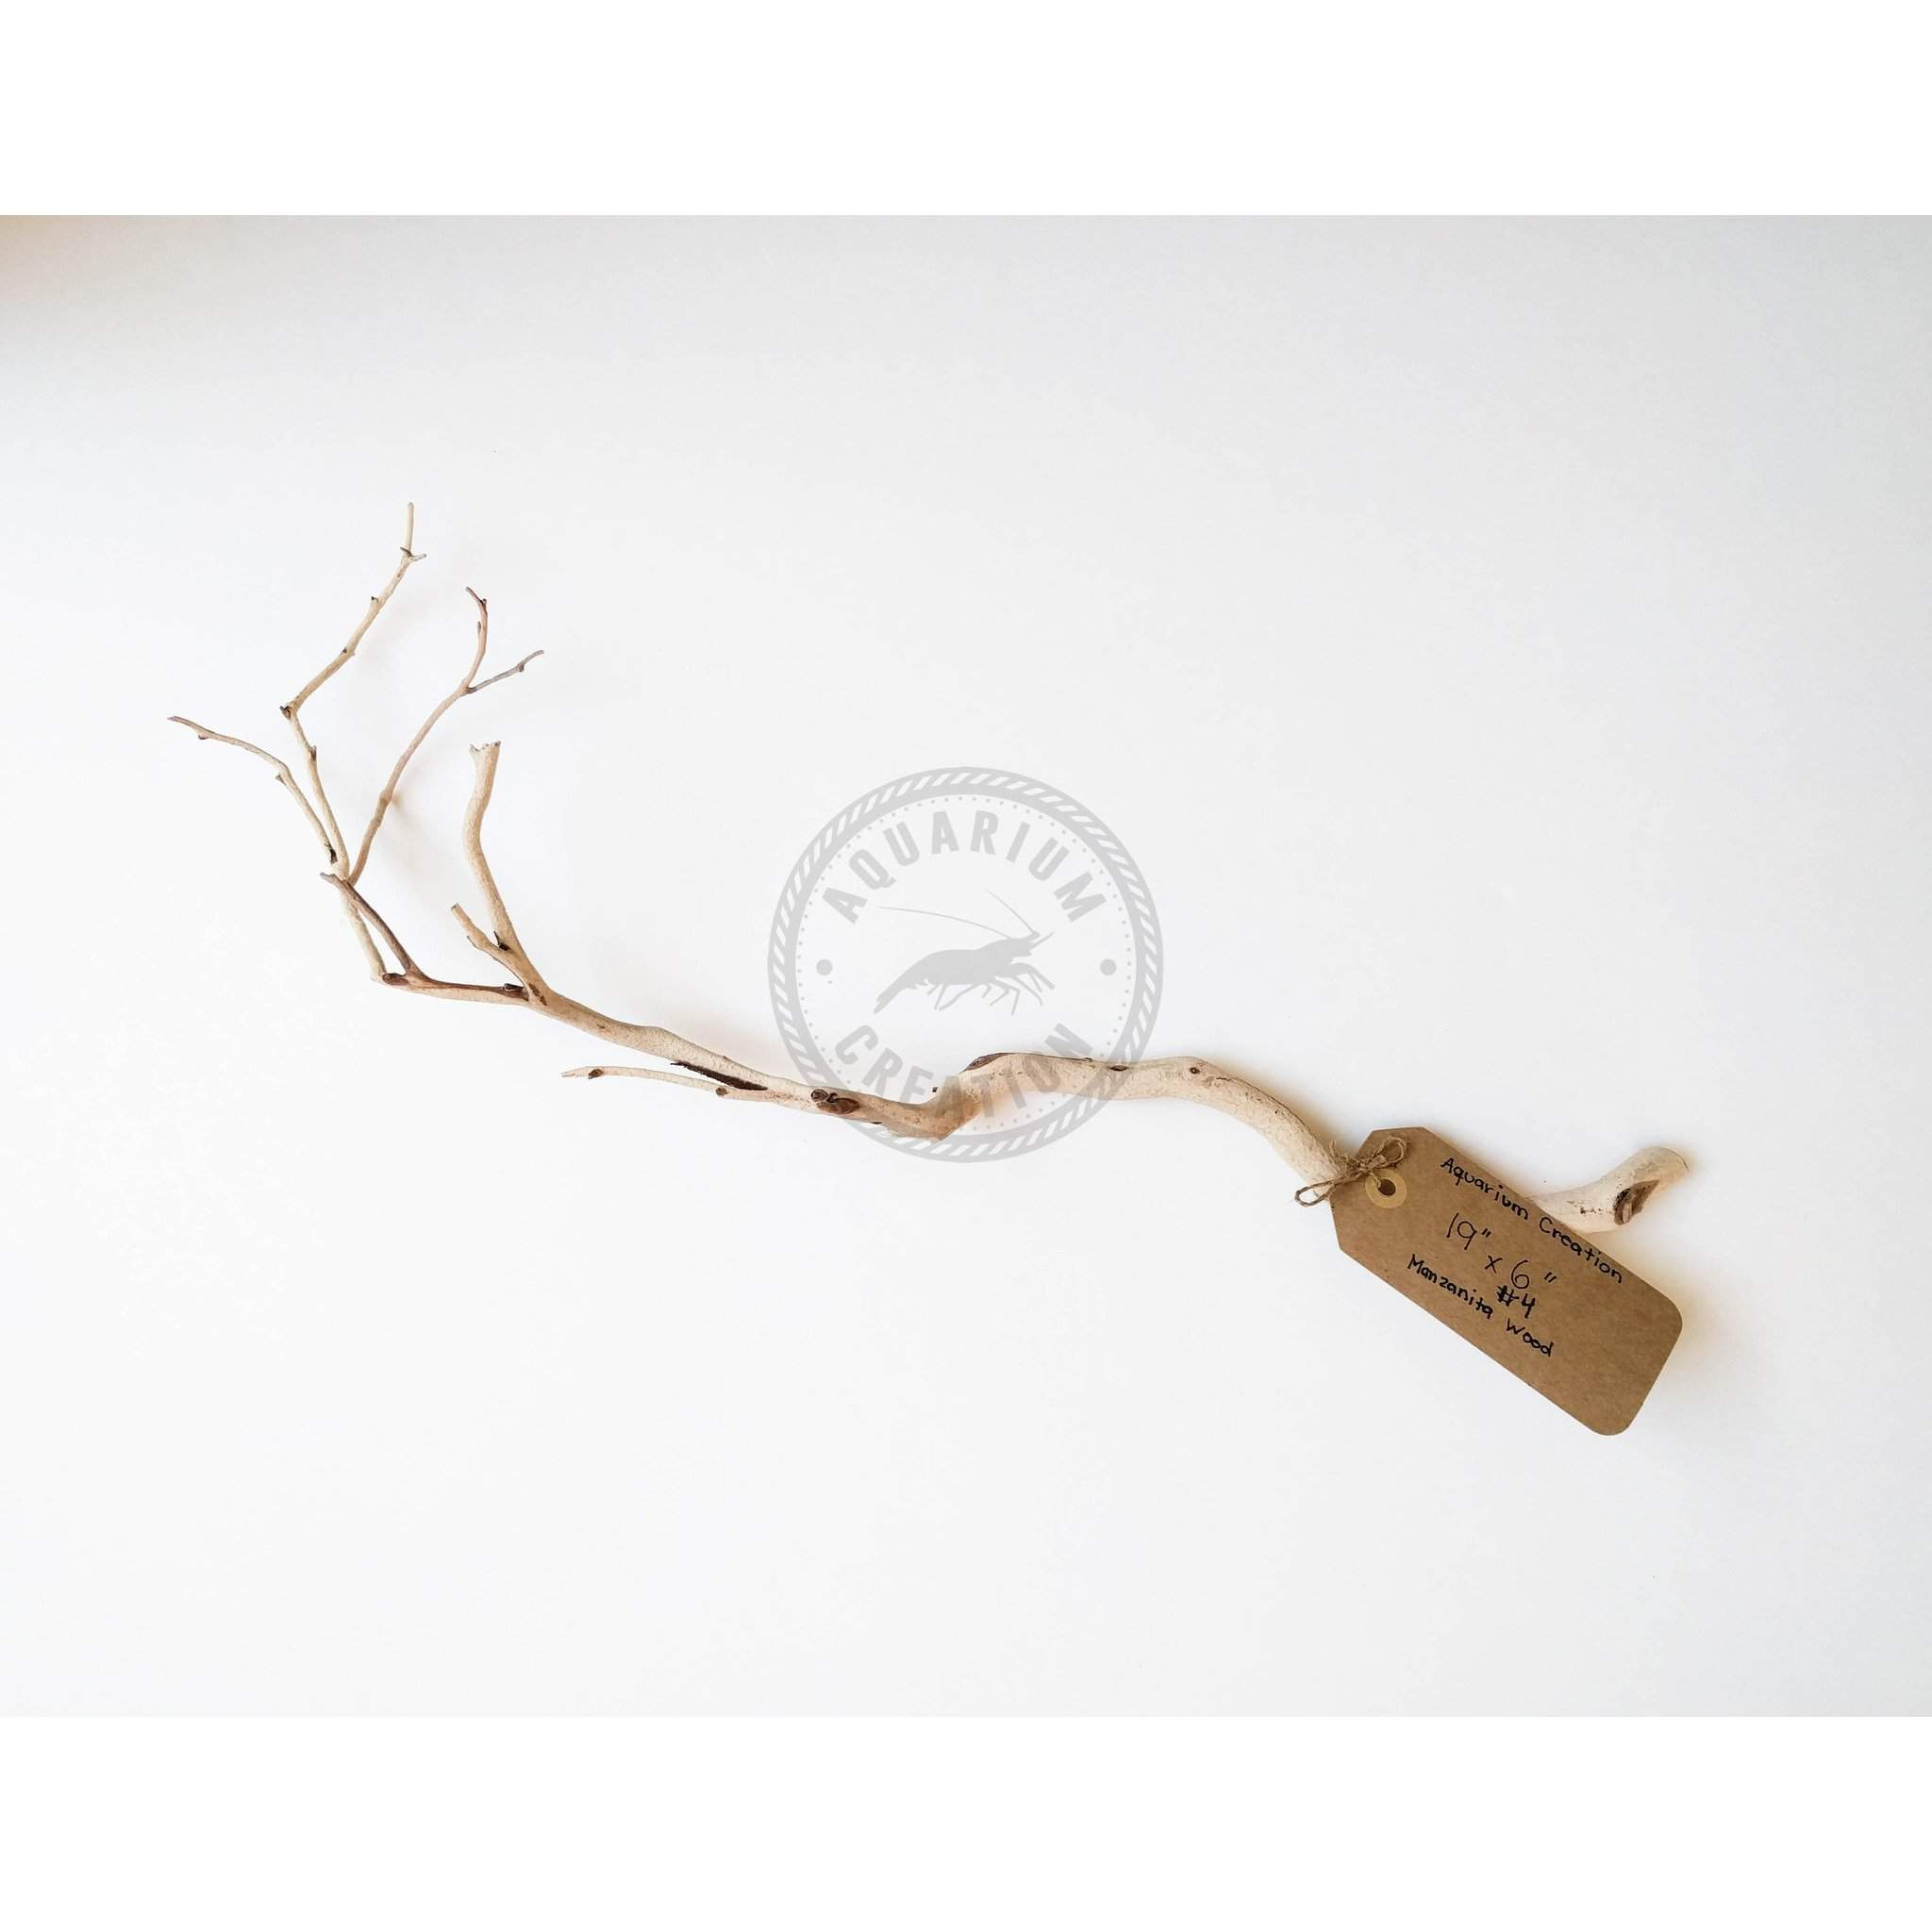 Nano Series Manzanita Driftwood - Piece #4 - Woods, Leaves, Natural Products - Aquarium Creation